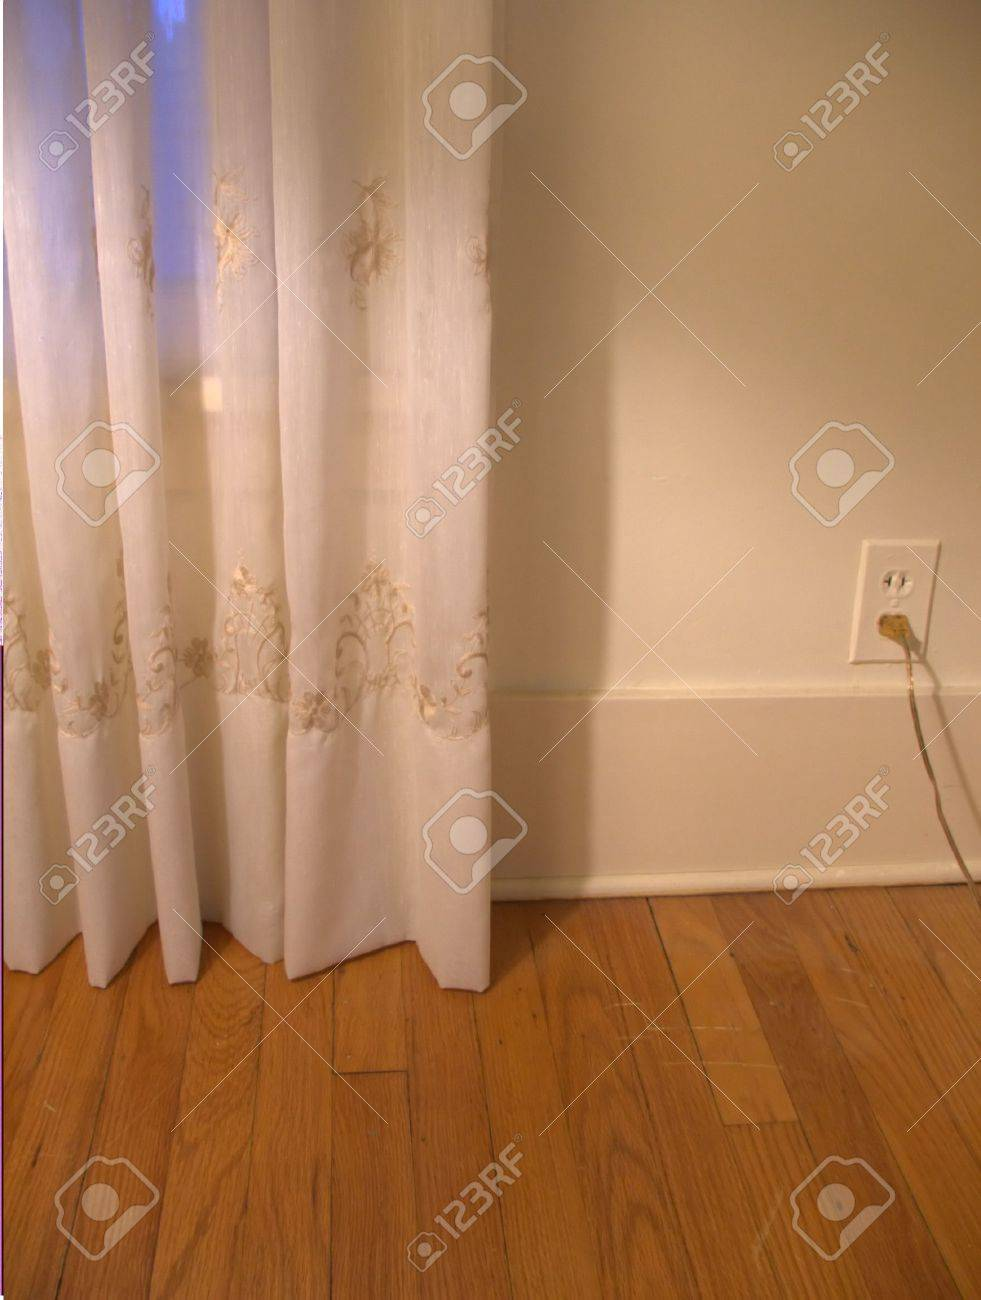 A Home Interior With Cream Colored Curtains Hardwood Floors Stock Photo Picture And Royalty Free Image Image 683884